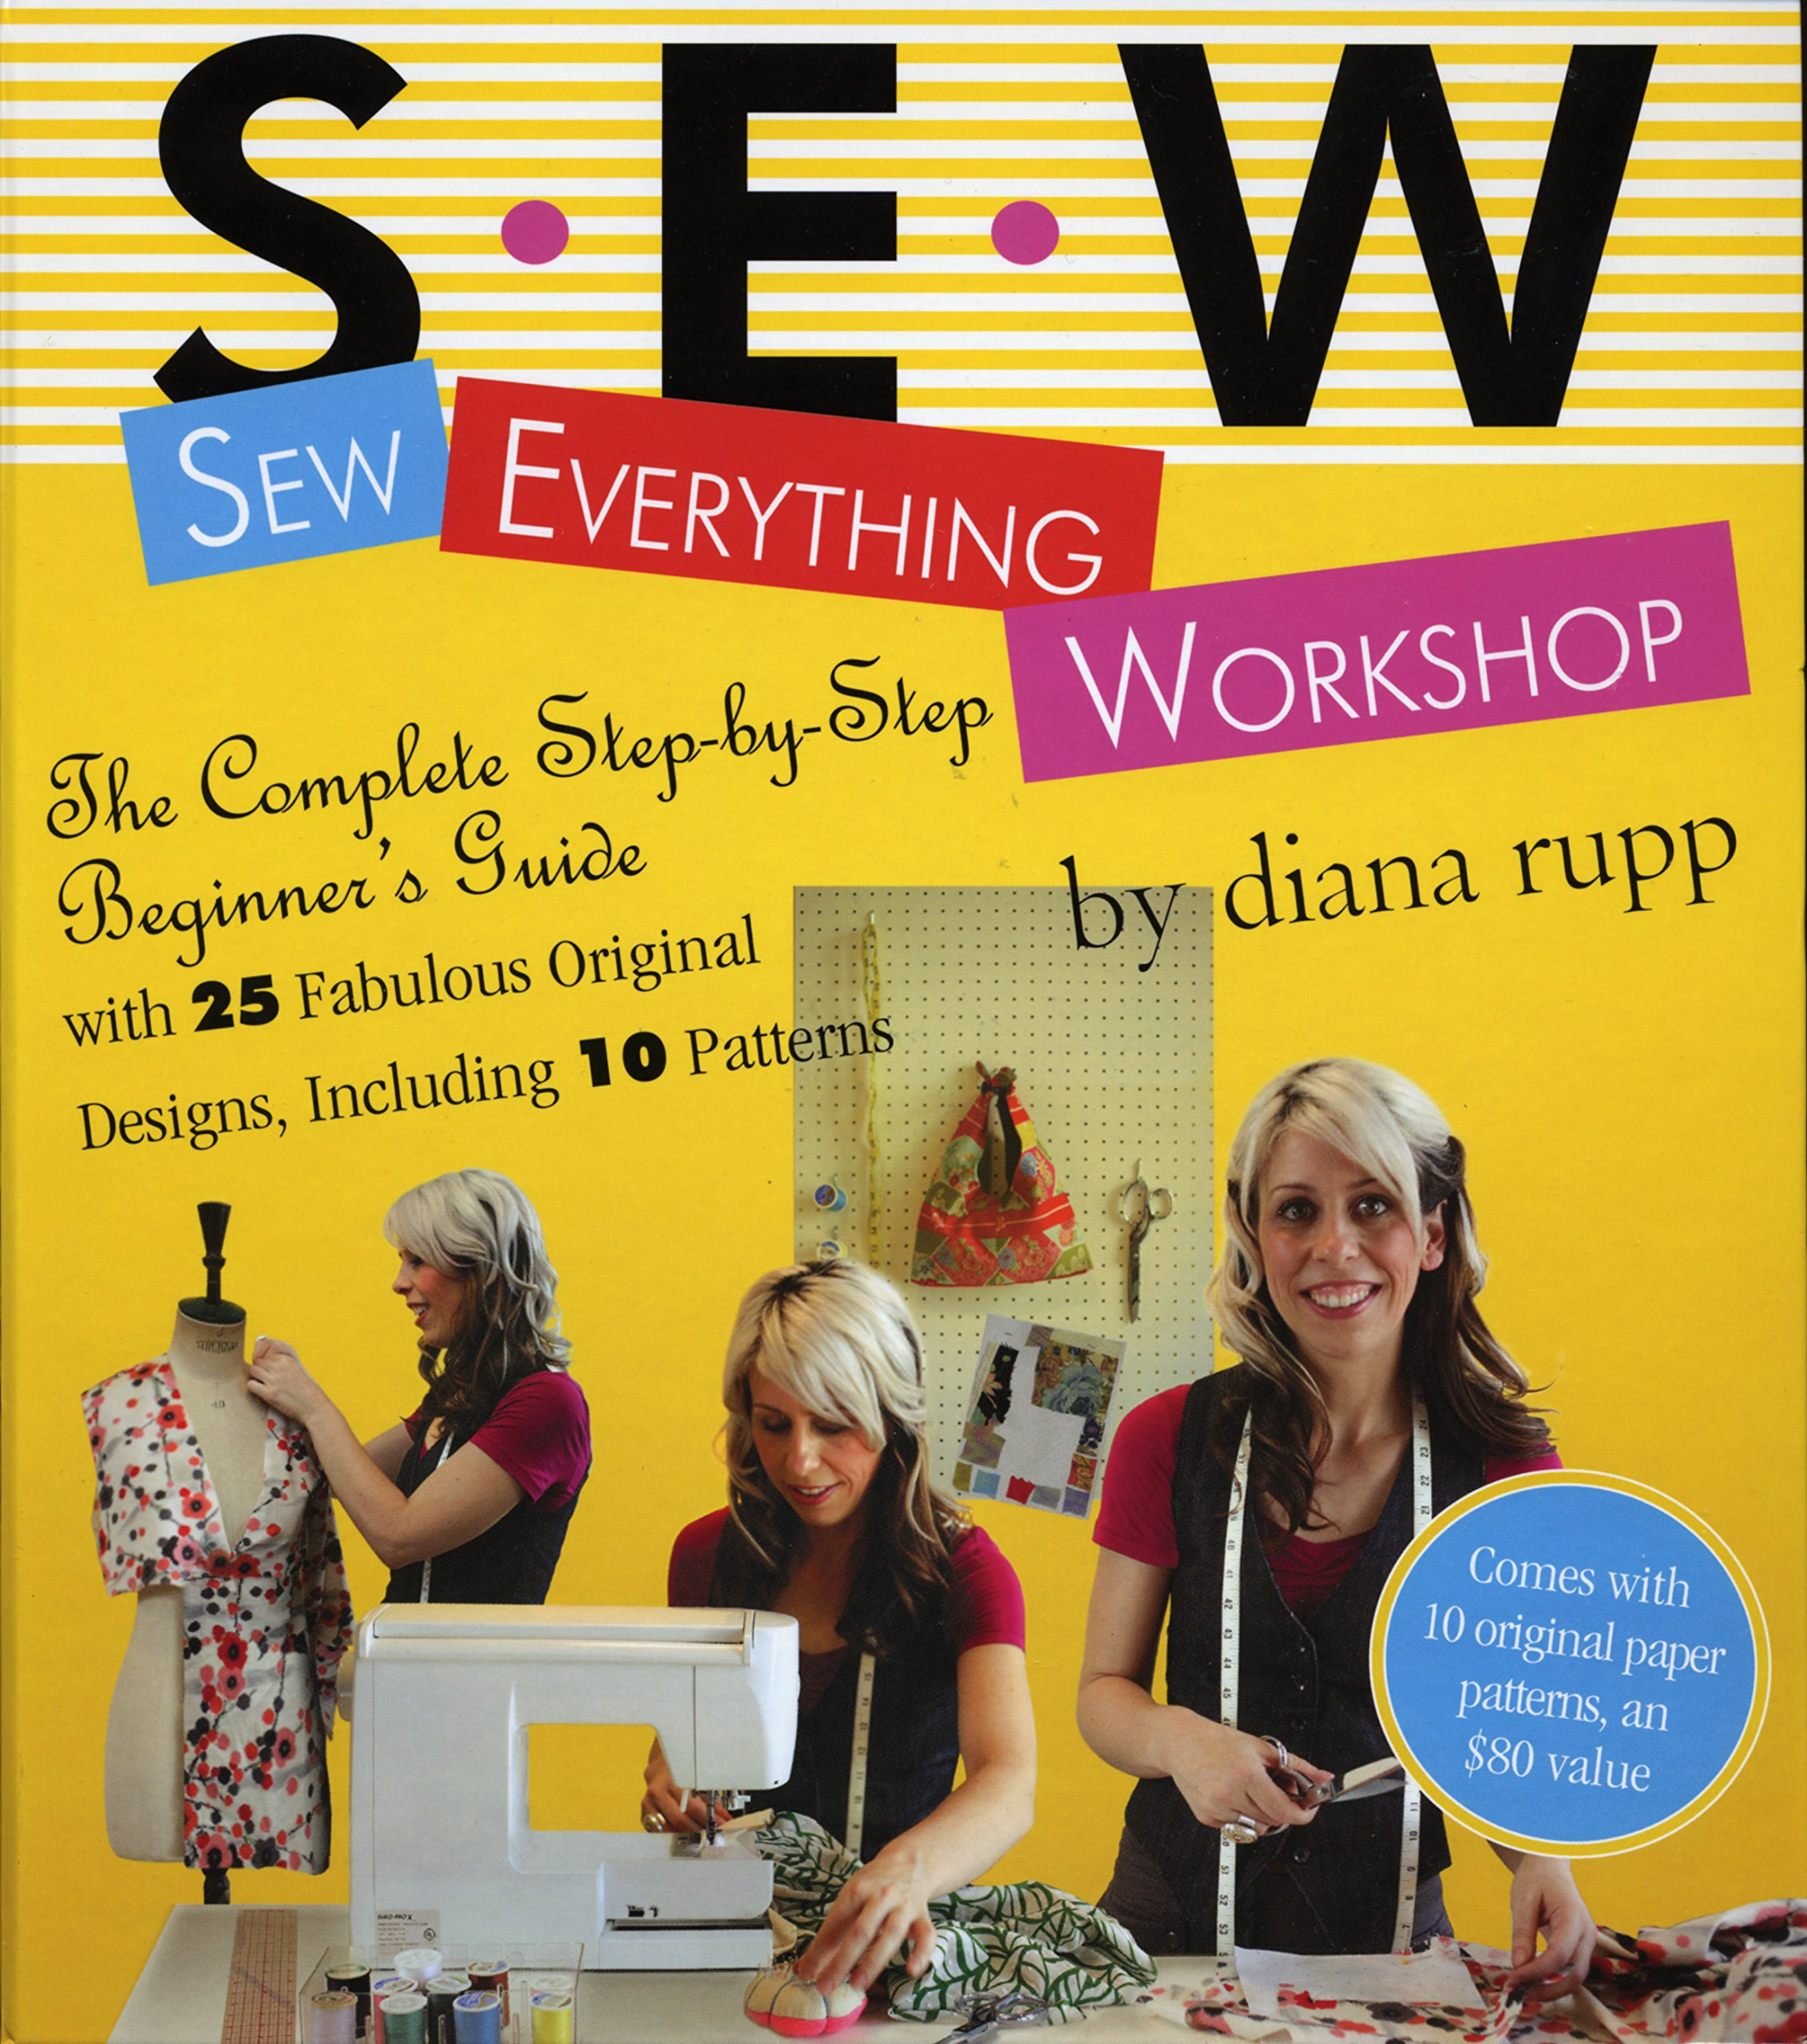 Sew everything workshop the complete step by step beginners sew everything workshop the complete step by step beginners guide with 25 fabulous original designs including 10 patterns diana rupp 0019628139733 jeuxipadfo Image collections